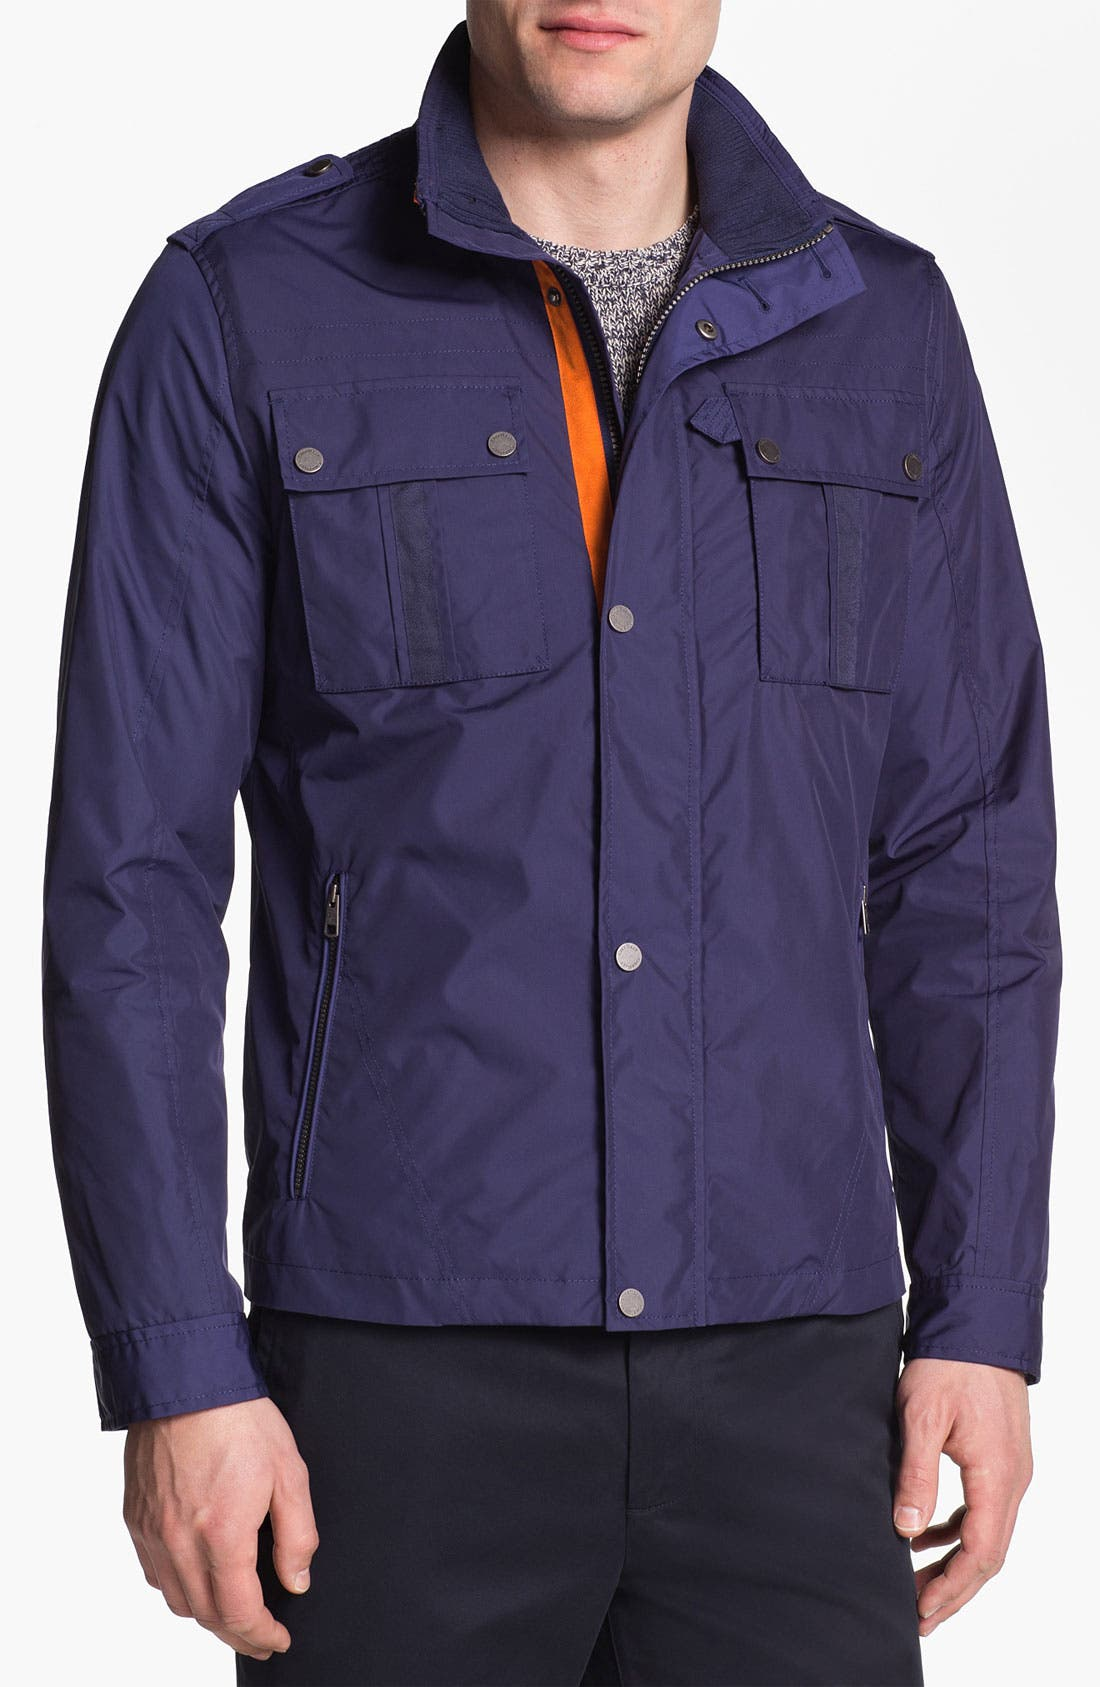 Main Image - Cole Haan Water Resistant Jacket